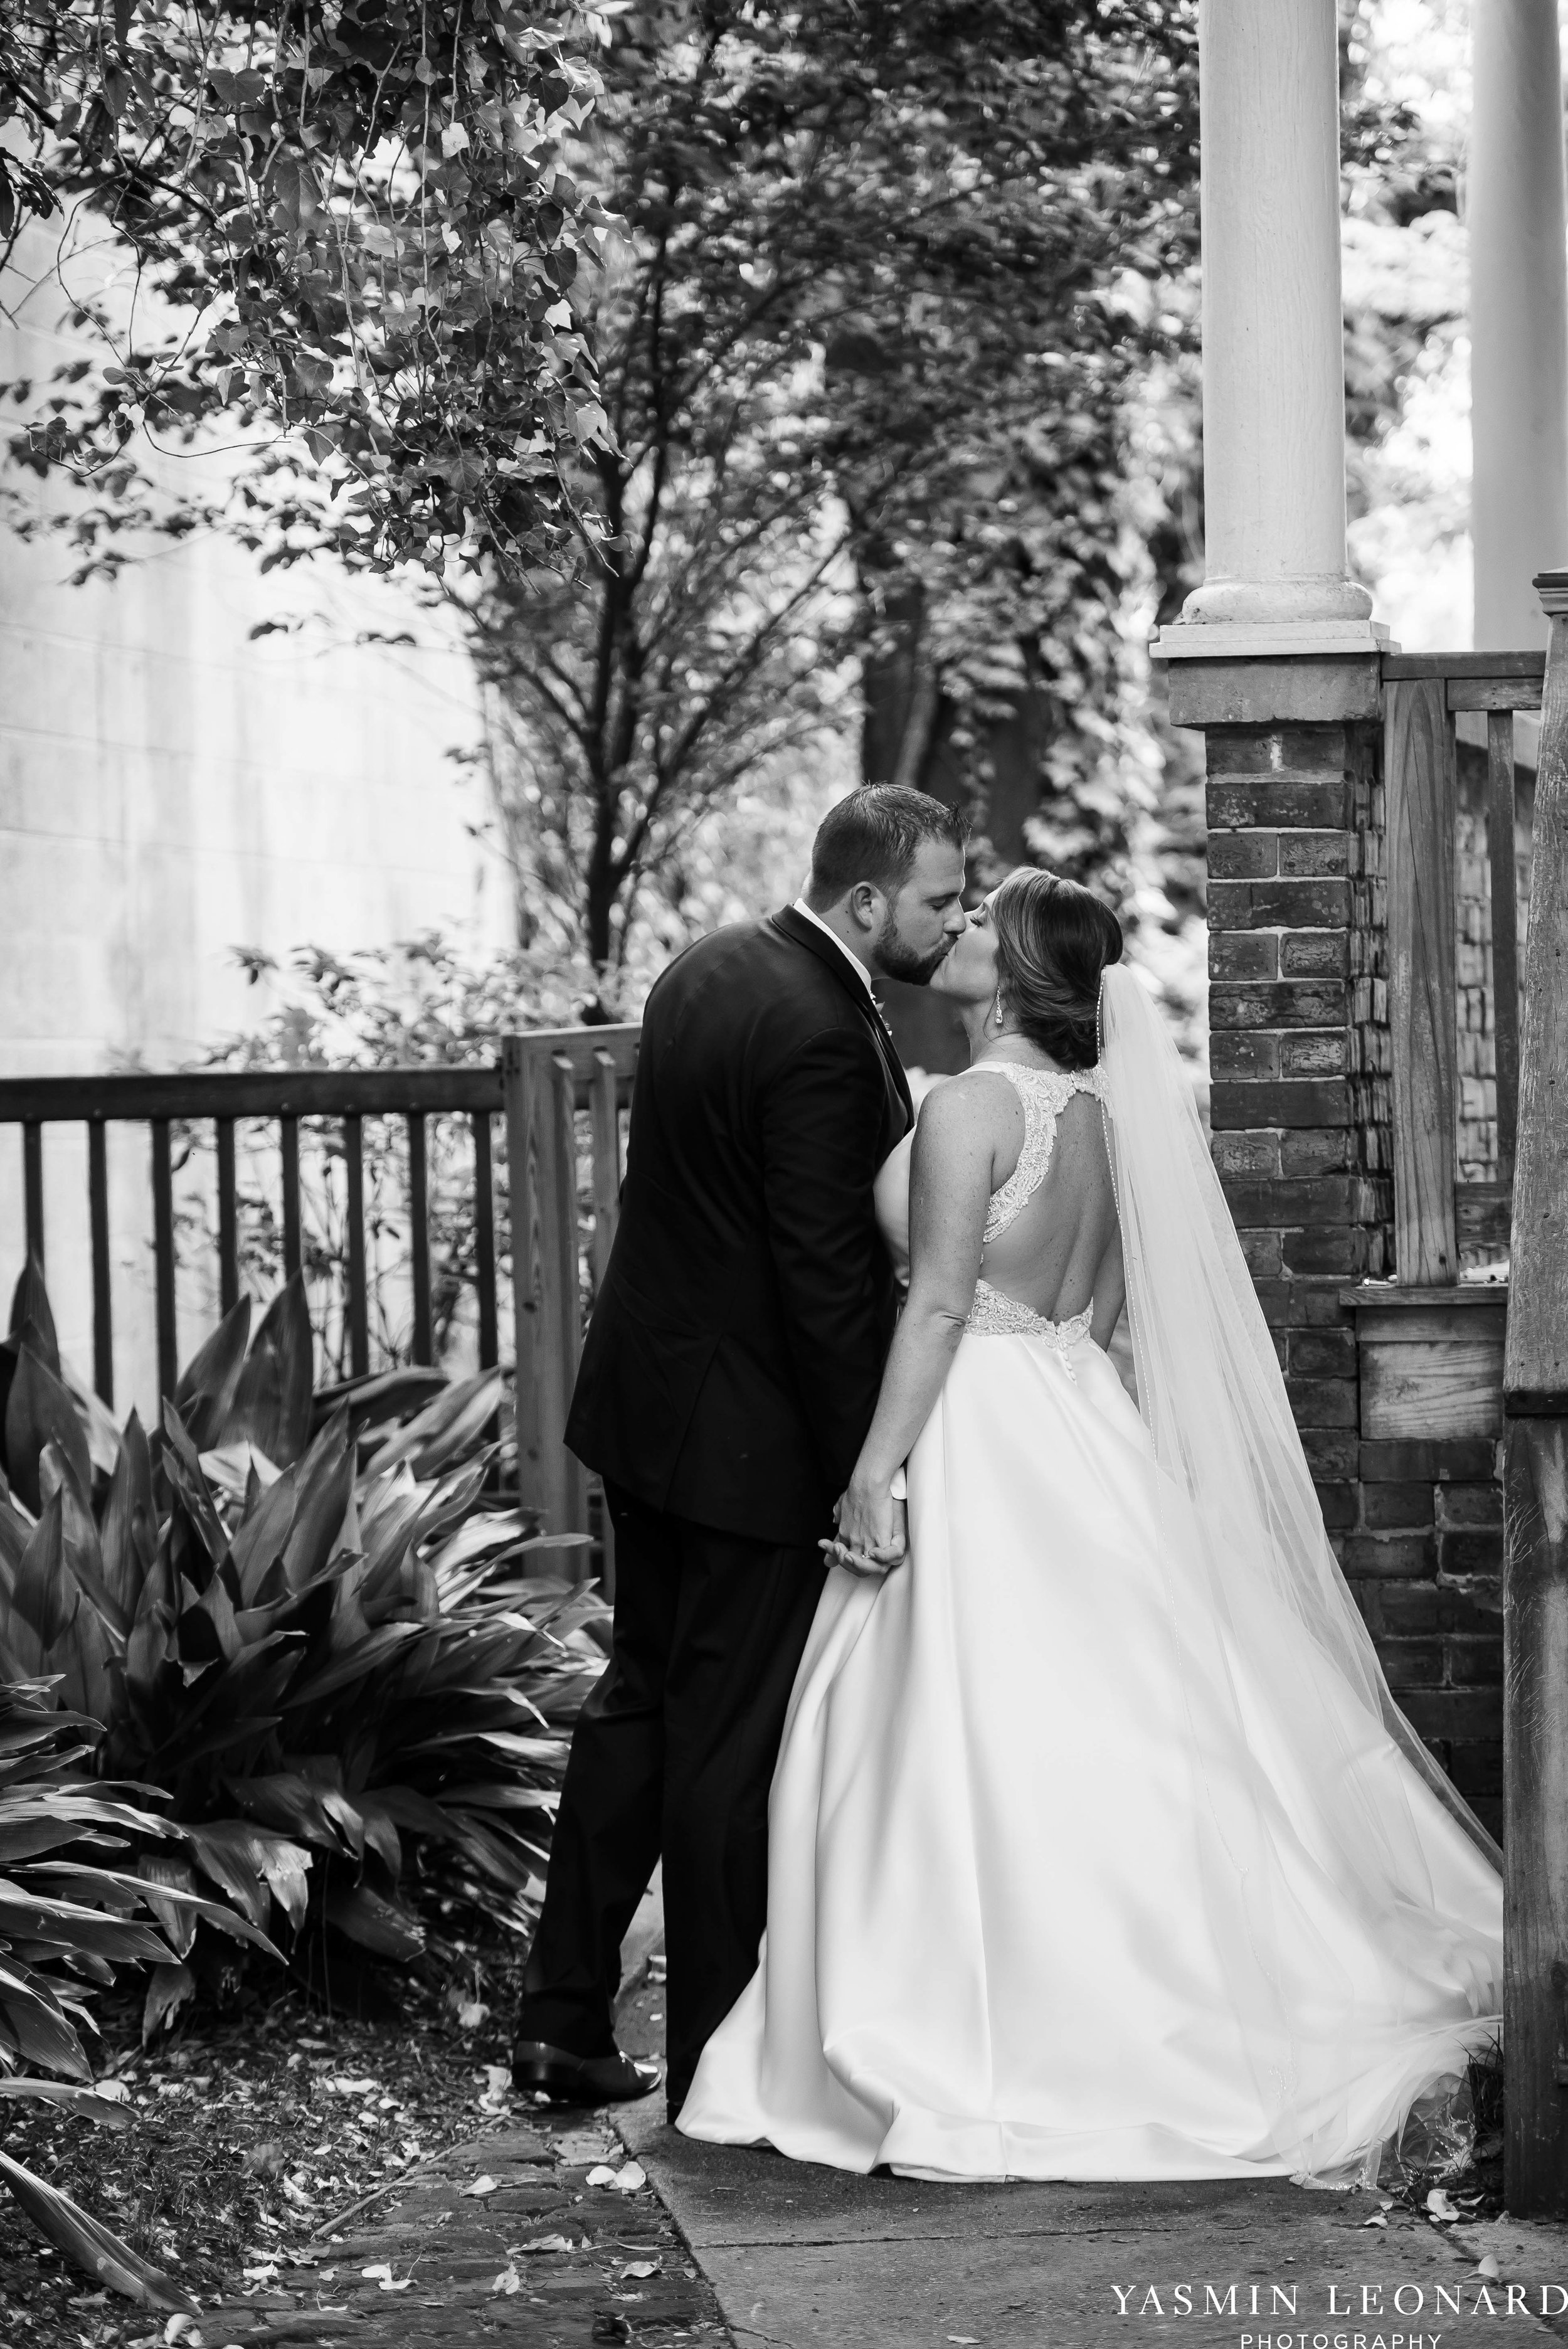 Wilmington Weddings - Brooklyn Arts Center - Downtown Wilmington Weddings - NC Beach Weddings - NC Wedding Photographer - NC Weddings - Wilmington Wedding Venues - Yasmin Leonard Photography-47.jpg